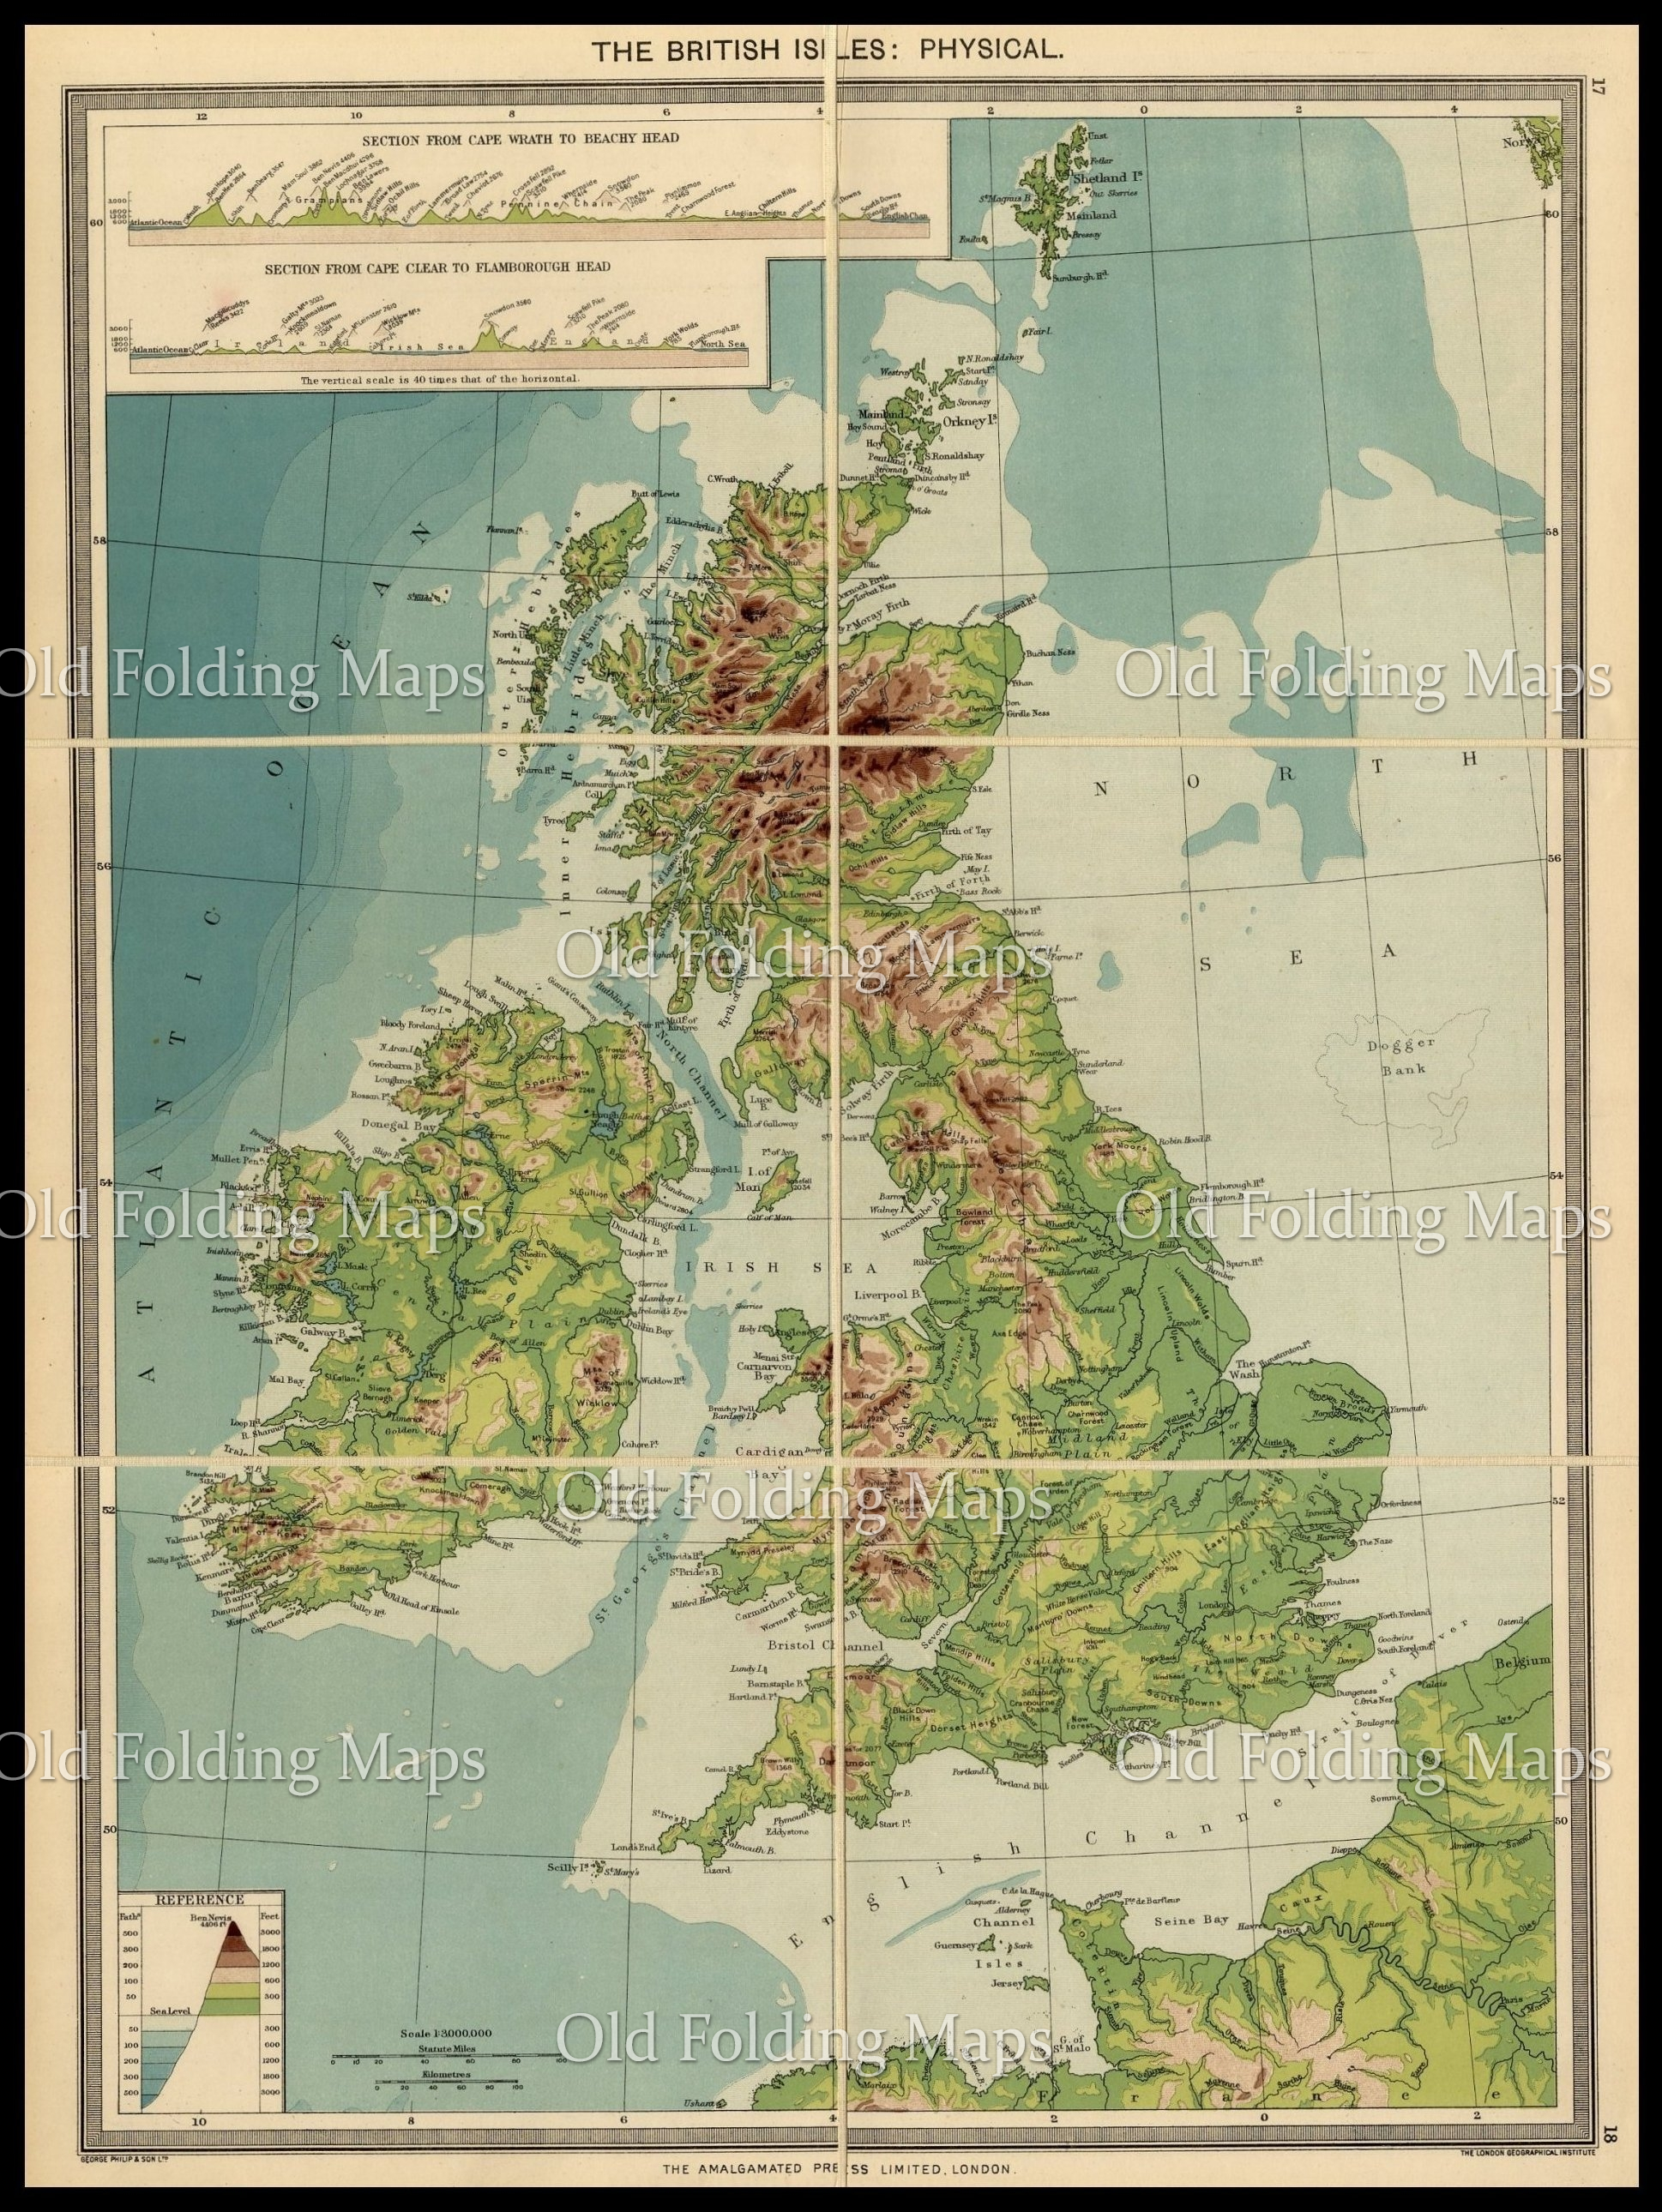 Old Map of The British Isles - Physical circa 1900